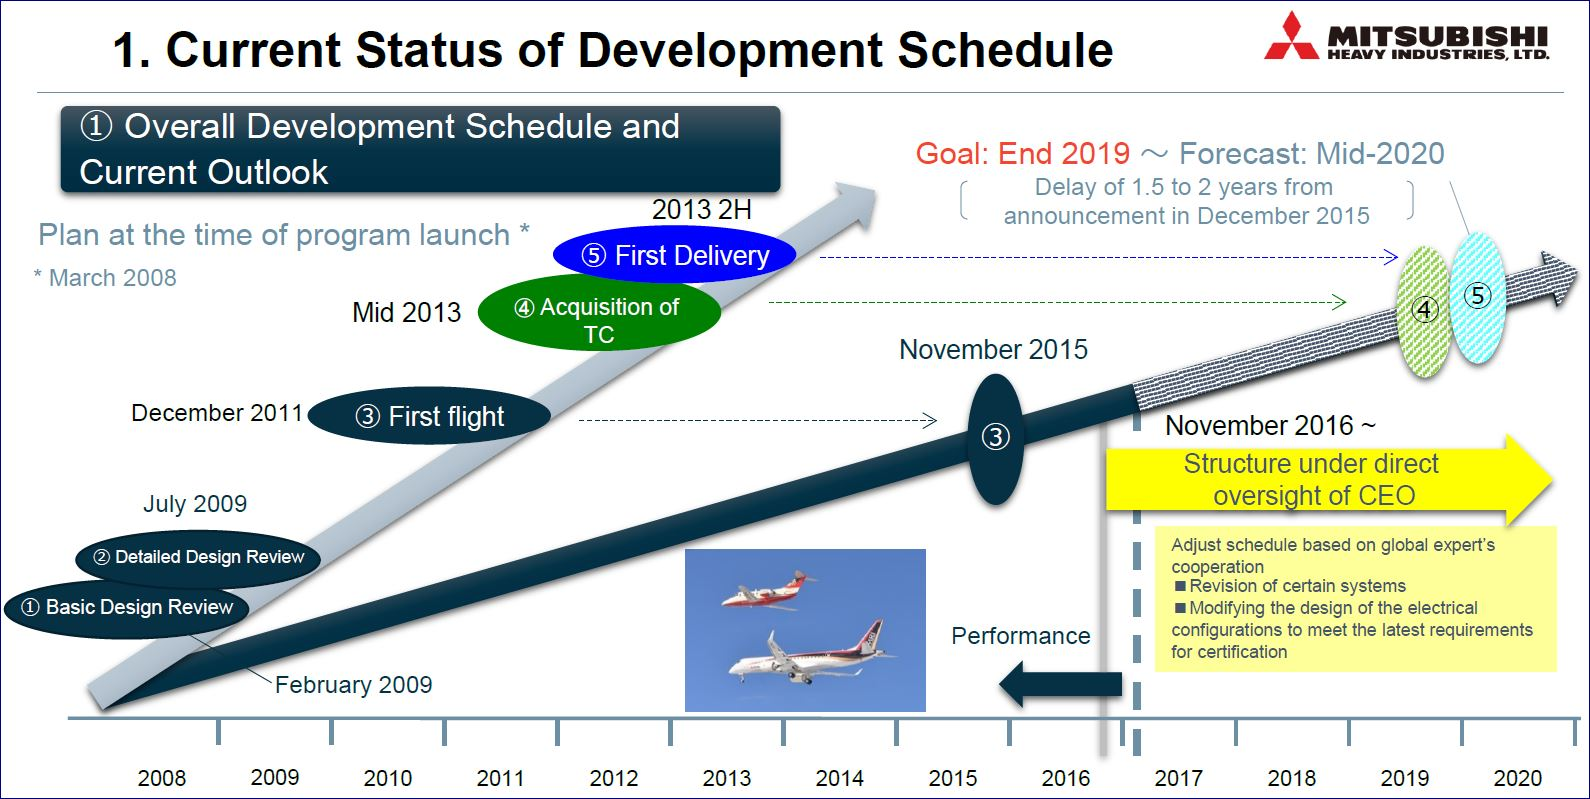 Mrj Delayed Again Though Most Airlines Not Clutching Their Pearls Mitsubishi Mrj90 Aircraft Schematics Mitsubishis Latest 2 Year Delay For The Program Shows Just How Far Project Has Slipped Since Its Launch In 2008 Image Mitsubushi